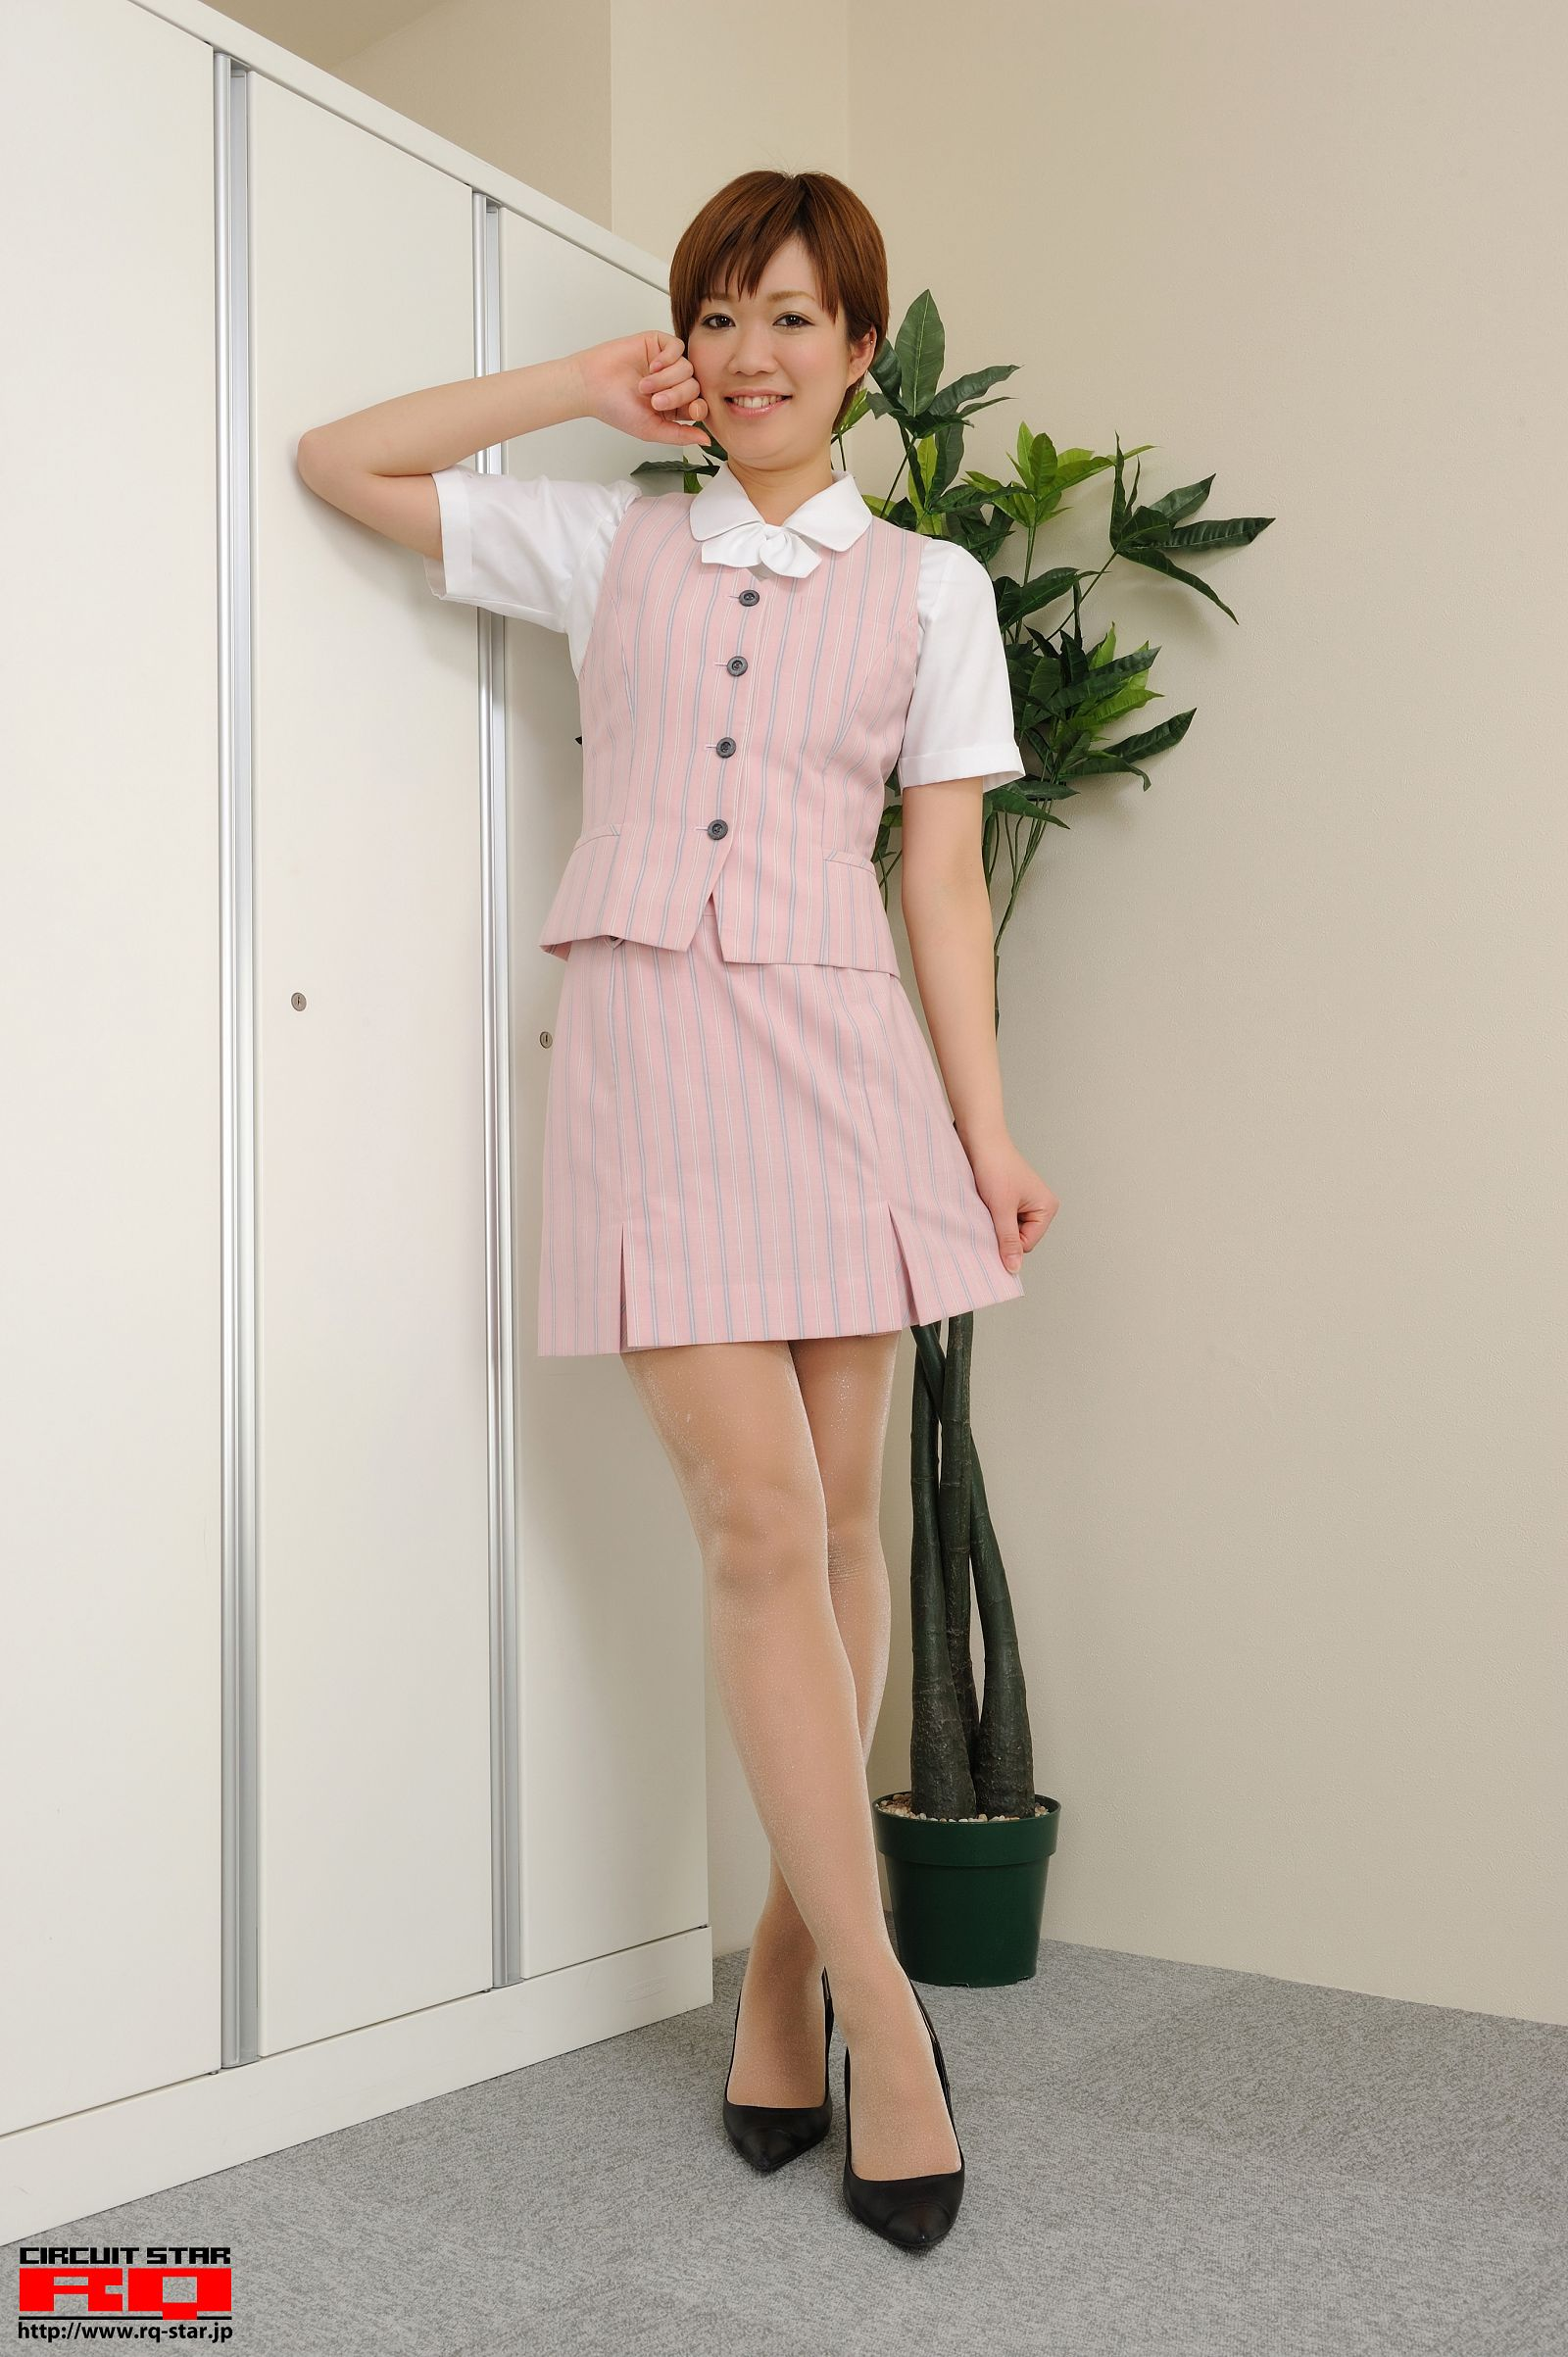 [RQ STAR美女] NO.00492 Chika Hori 堀ちか Office Lady[112P] RQ STAR 第1张